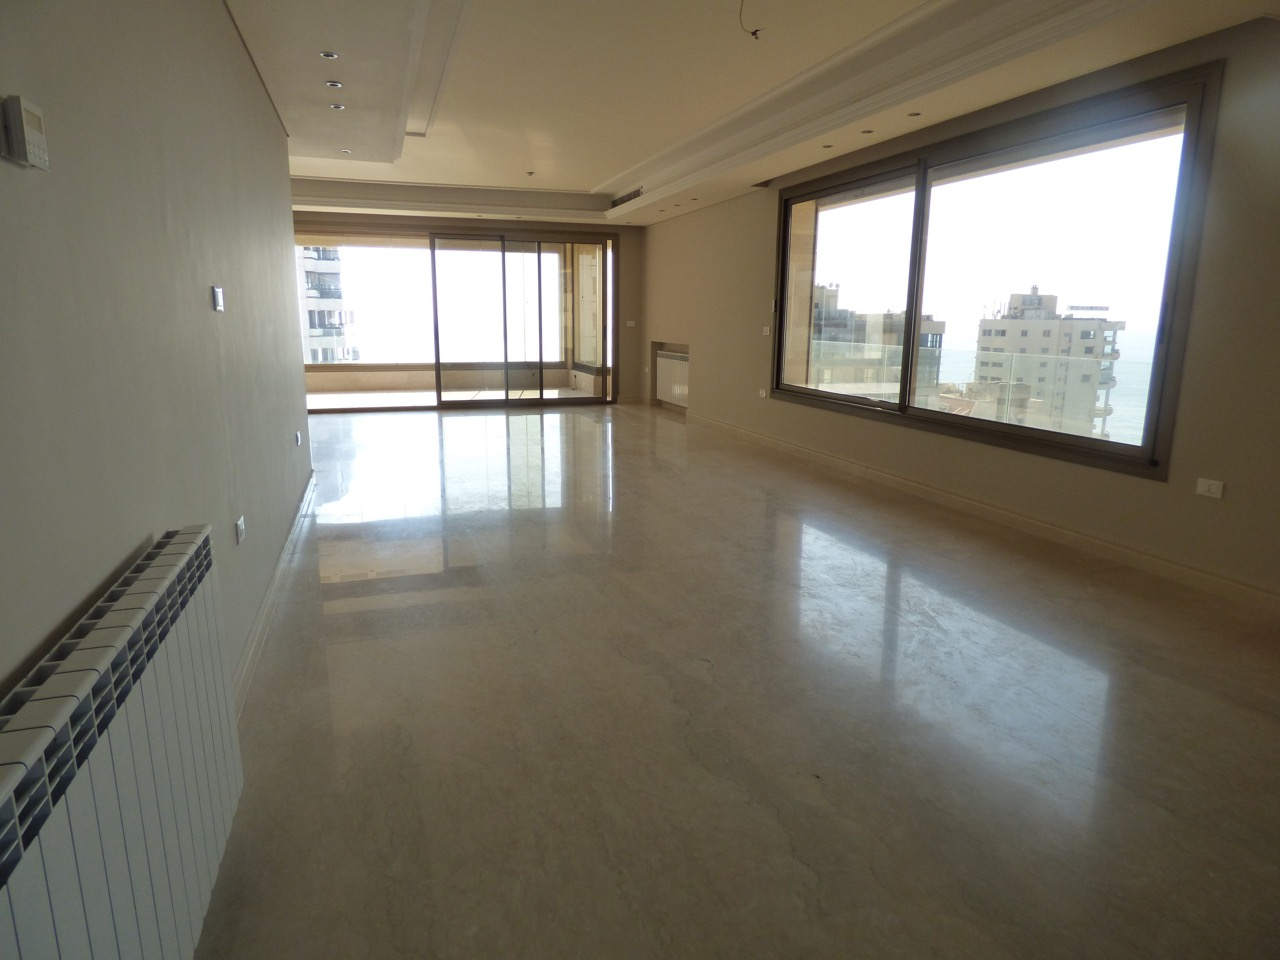 Apartment in Ain El Mreiseh, Beirut